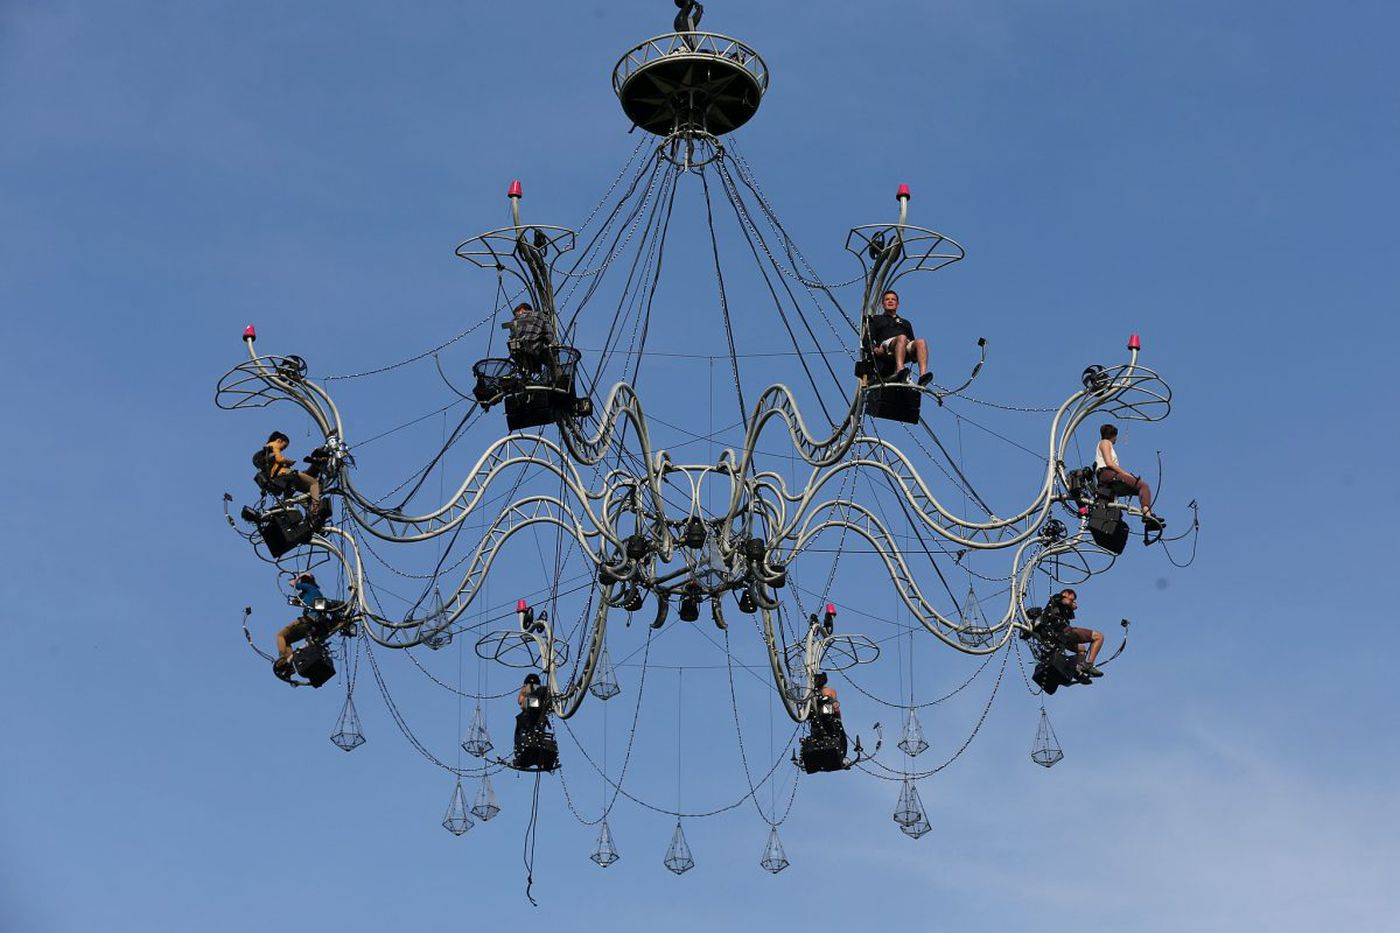 I went up 50 feet in the air over the Schuylkill to ride PIFA's 'human chandelier'